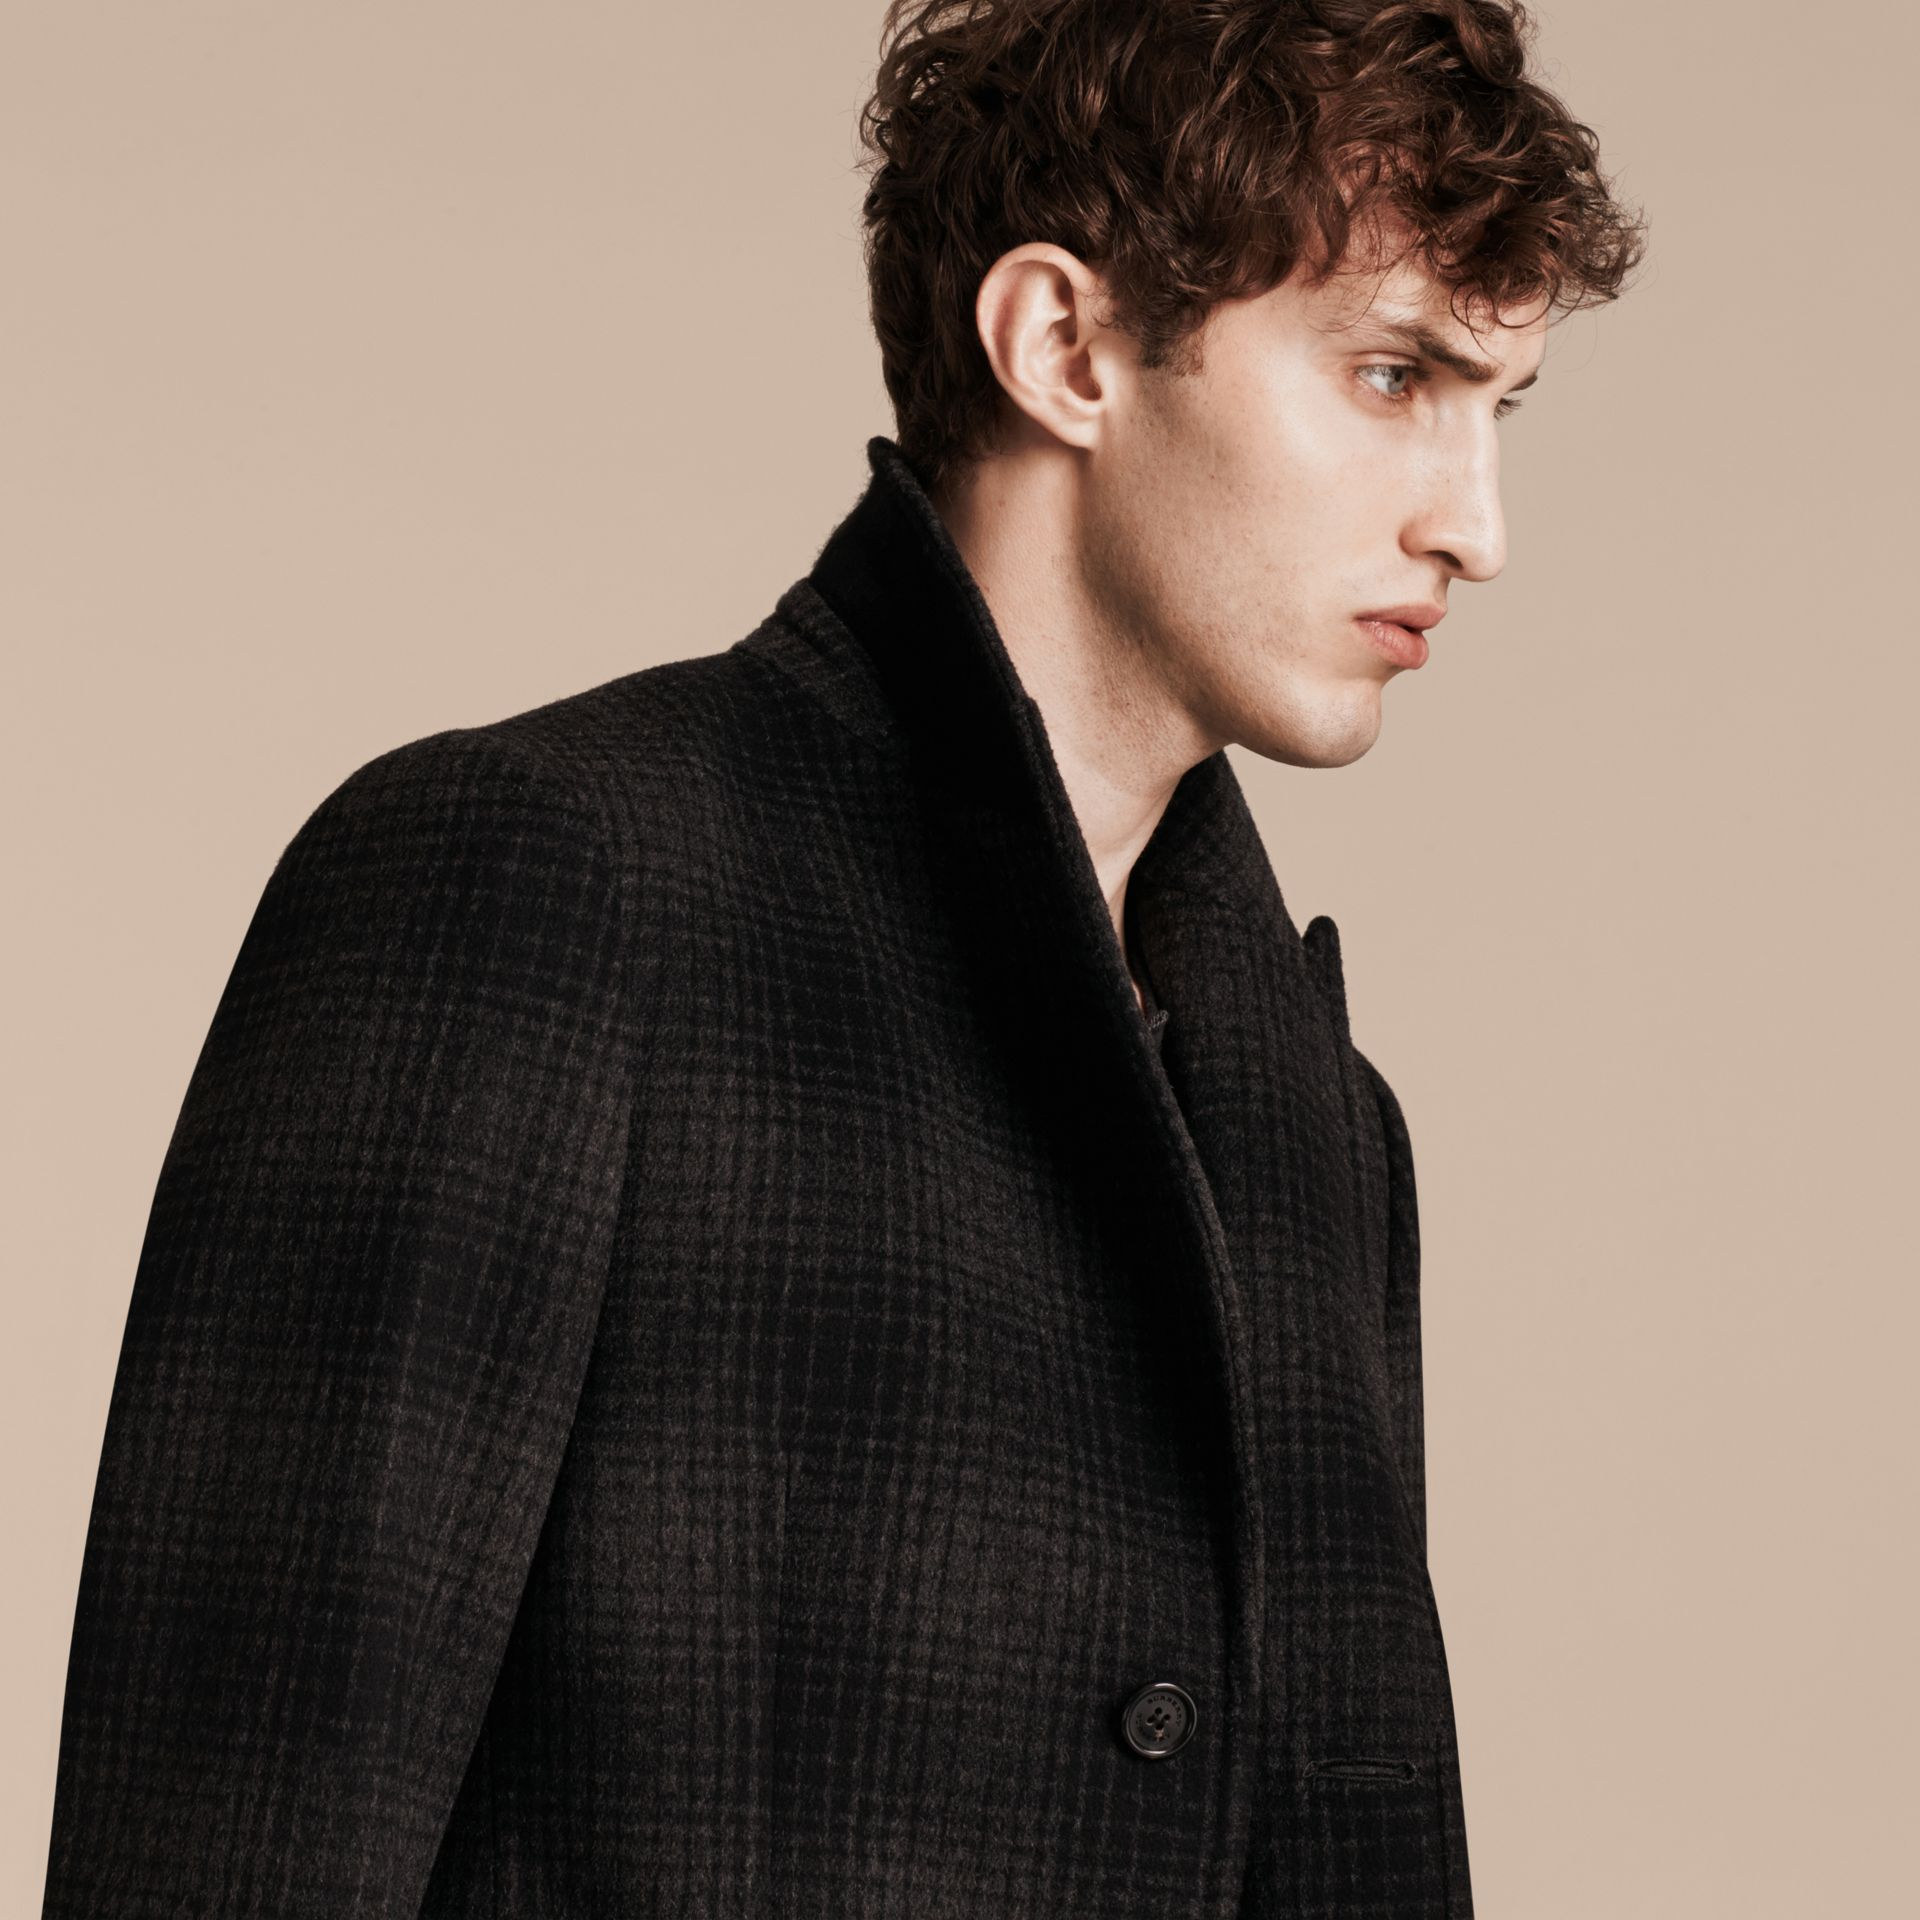 Charcoal melange Tailored Check Wool Cashmere Coat - gallery image 6